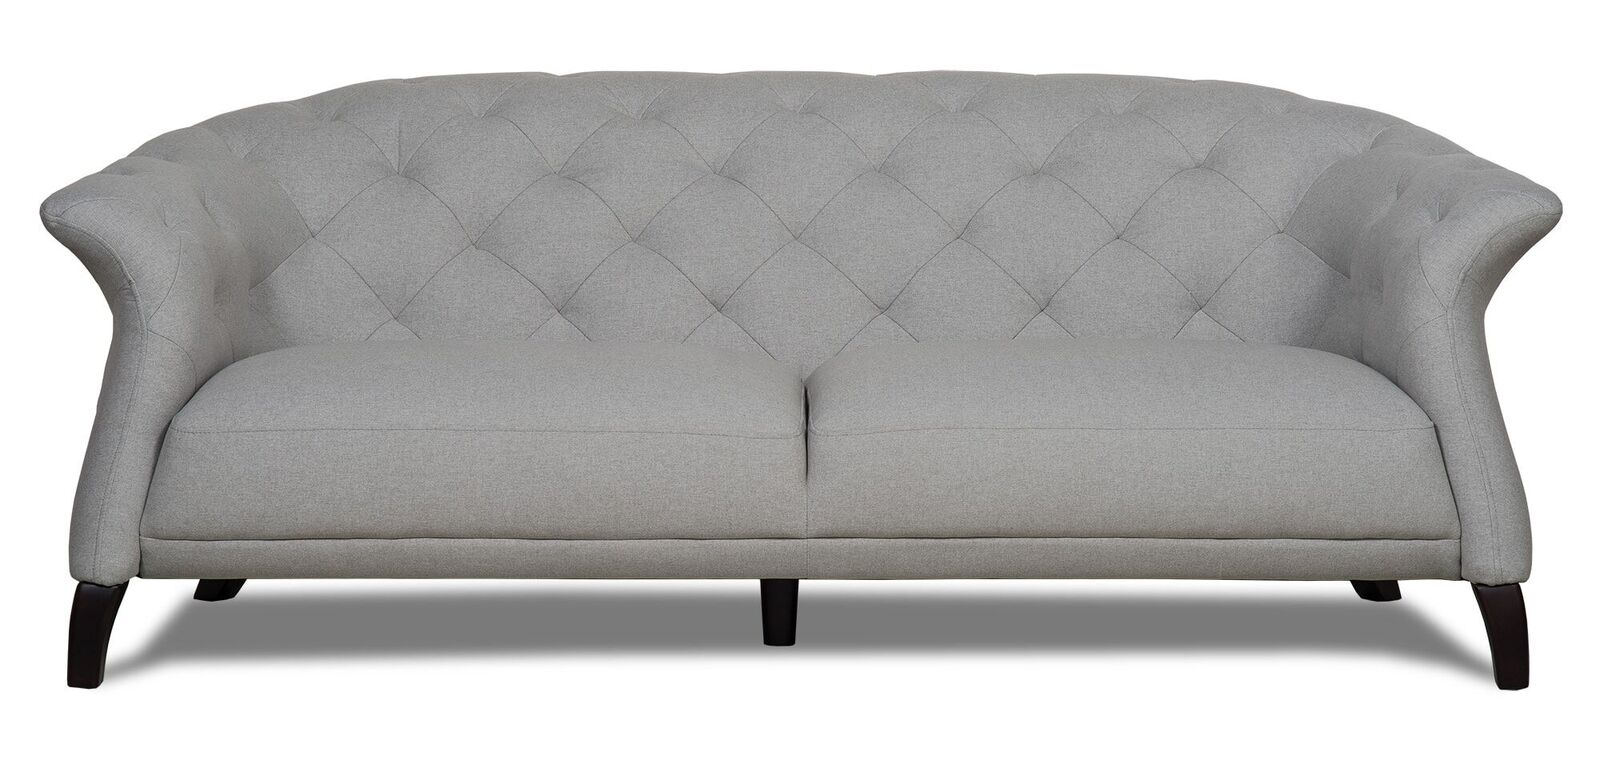 Crispin 3 Seater Chesterfield Sofa